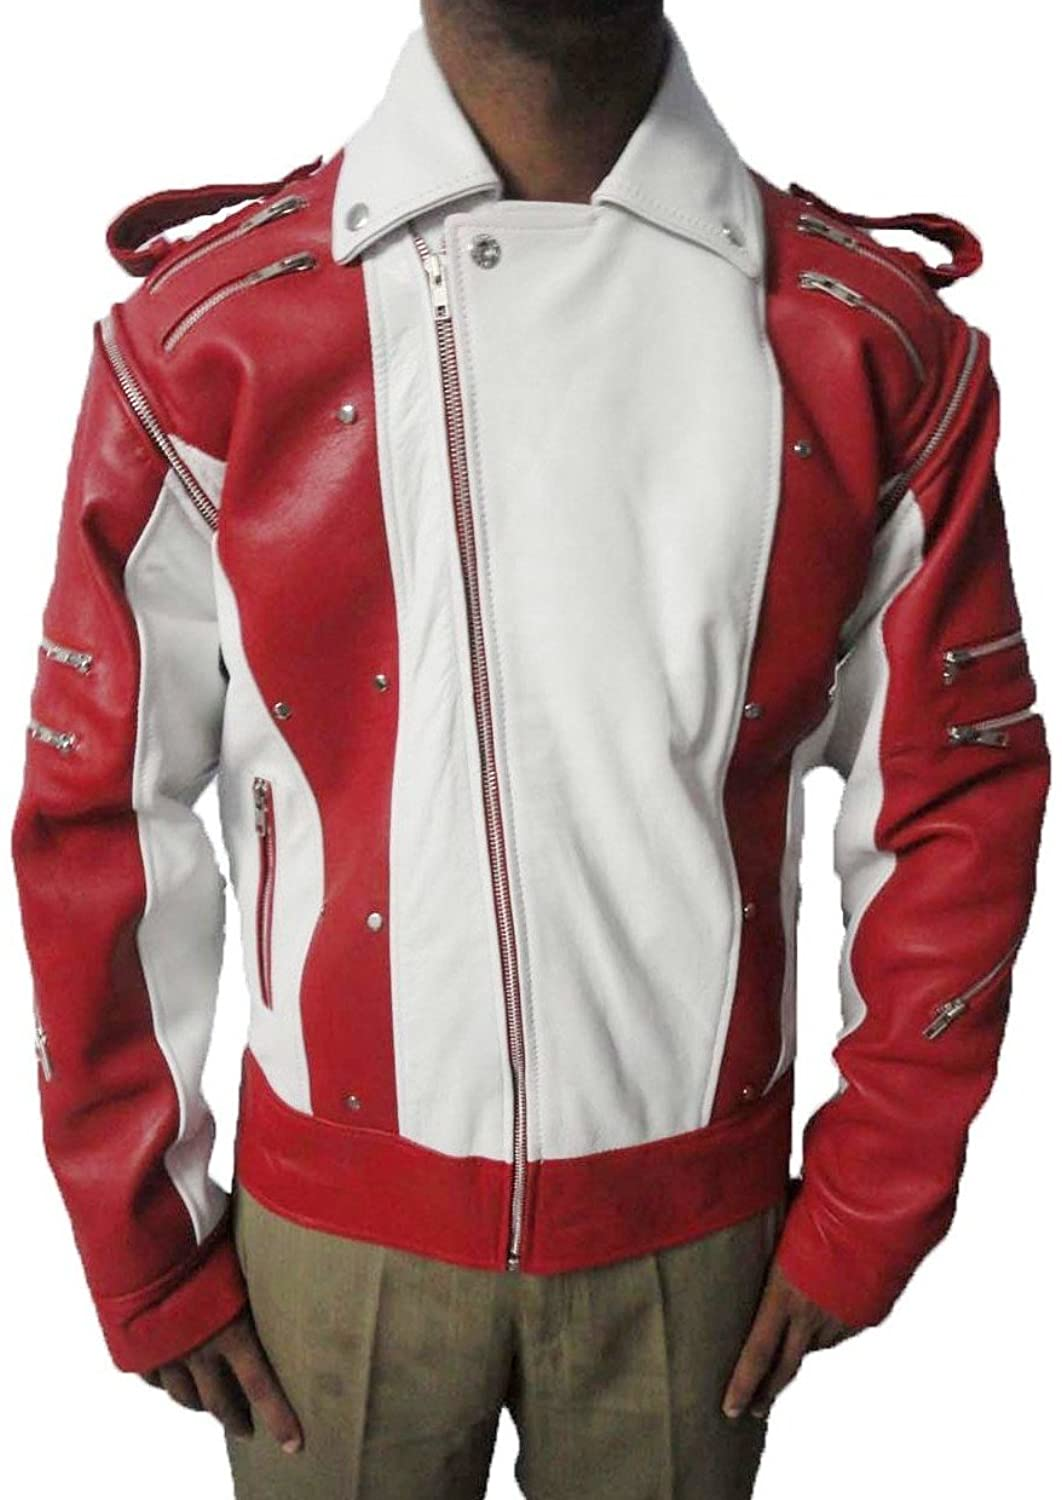 mens Real leather jacket=Michael jackson pepsi red and white=Available sizes XS---5XL